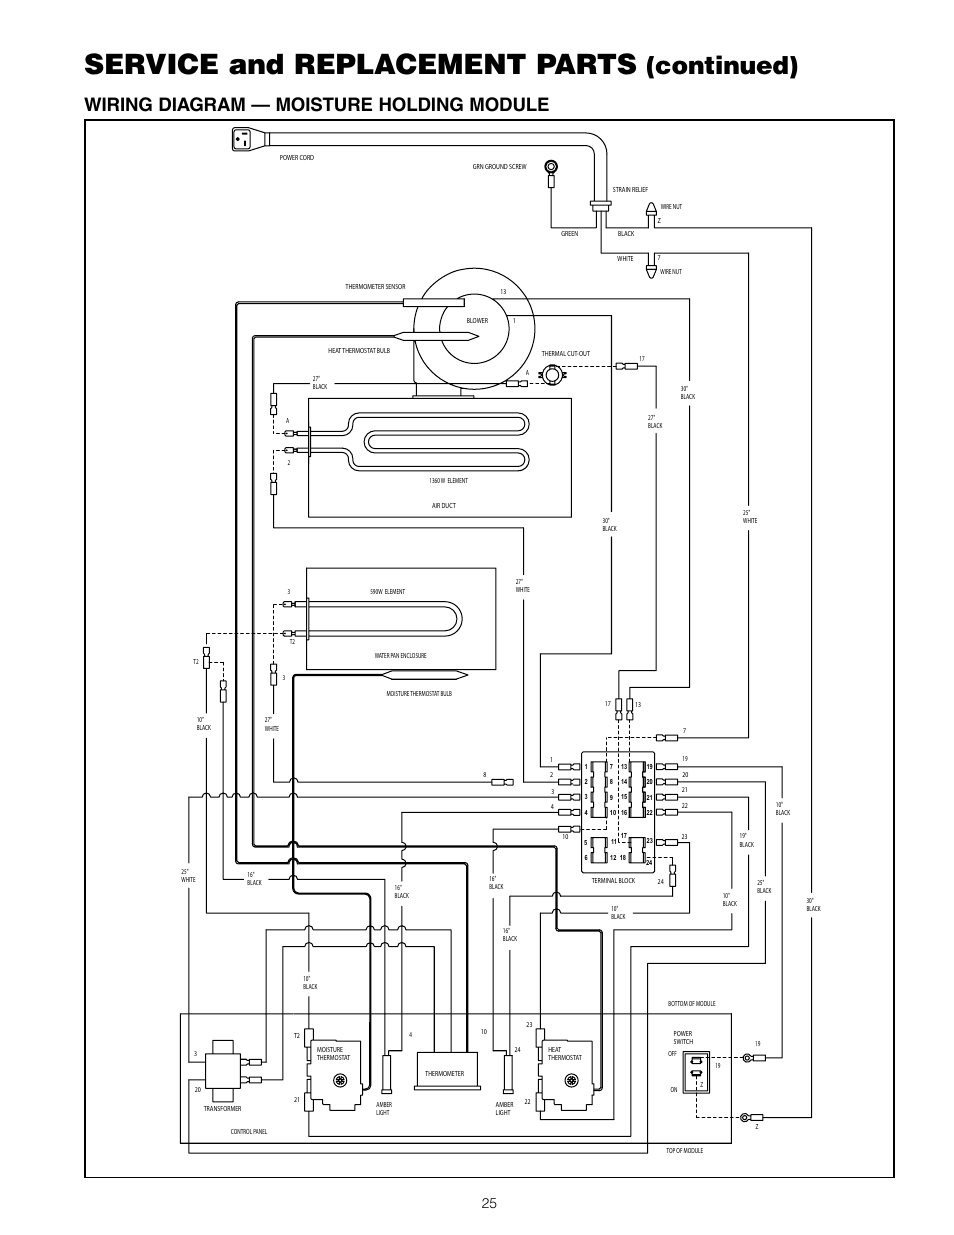 service and replacement parts  continued   wiring diagram  u2014 moisture holding module